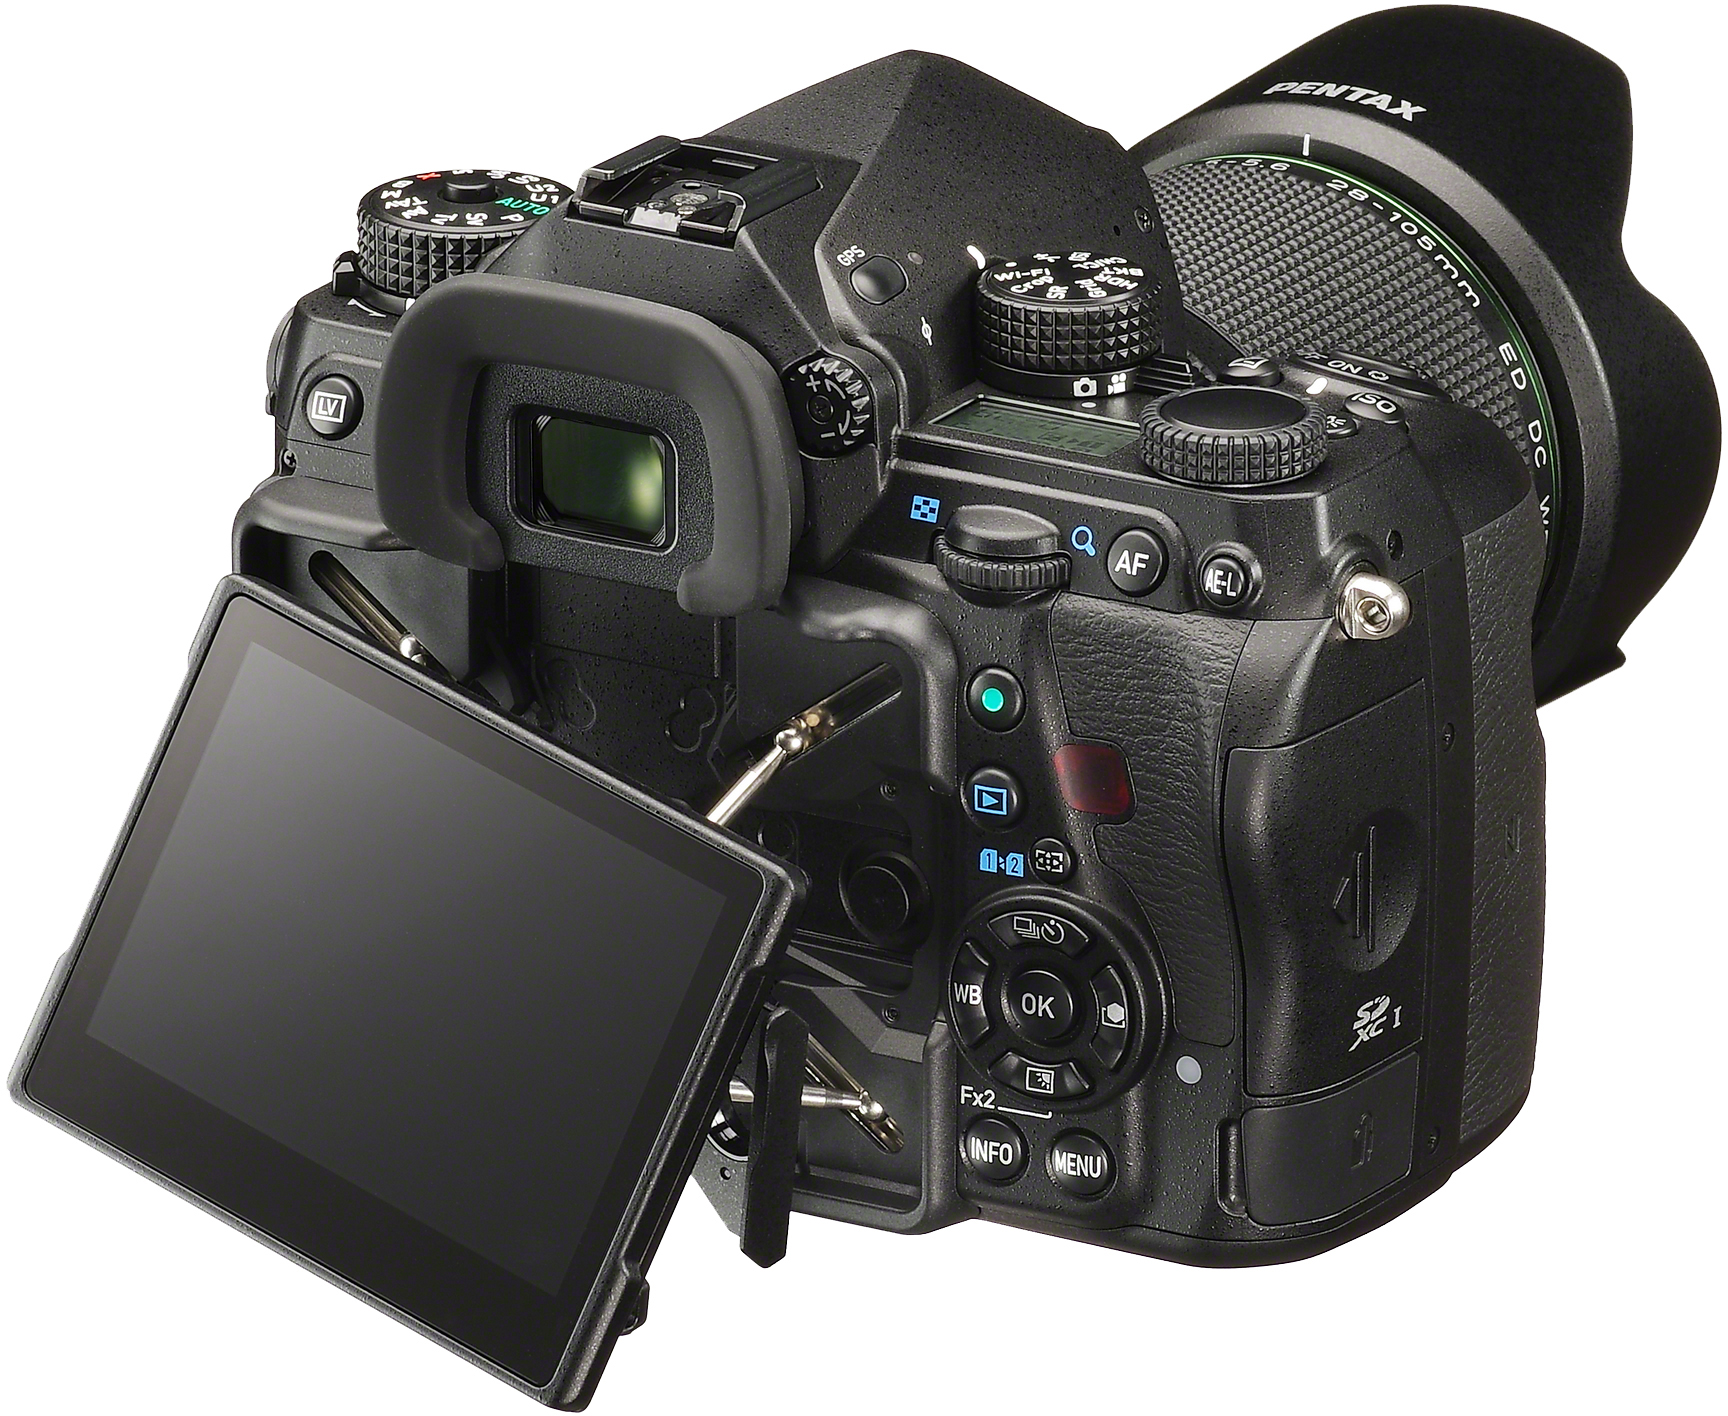 Camera Weather Sealed Dslr Cameras unveiled pentax makes its first foray into full frame cameras camera has a unique 3 2 cross tilt lcd screen which can upward downward and left right 35a